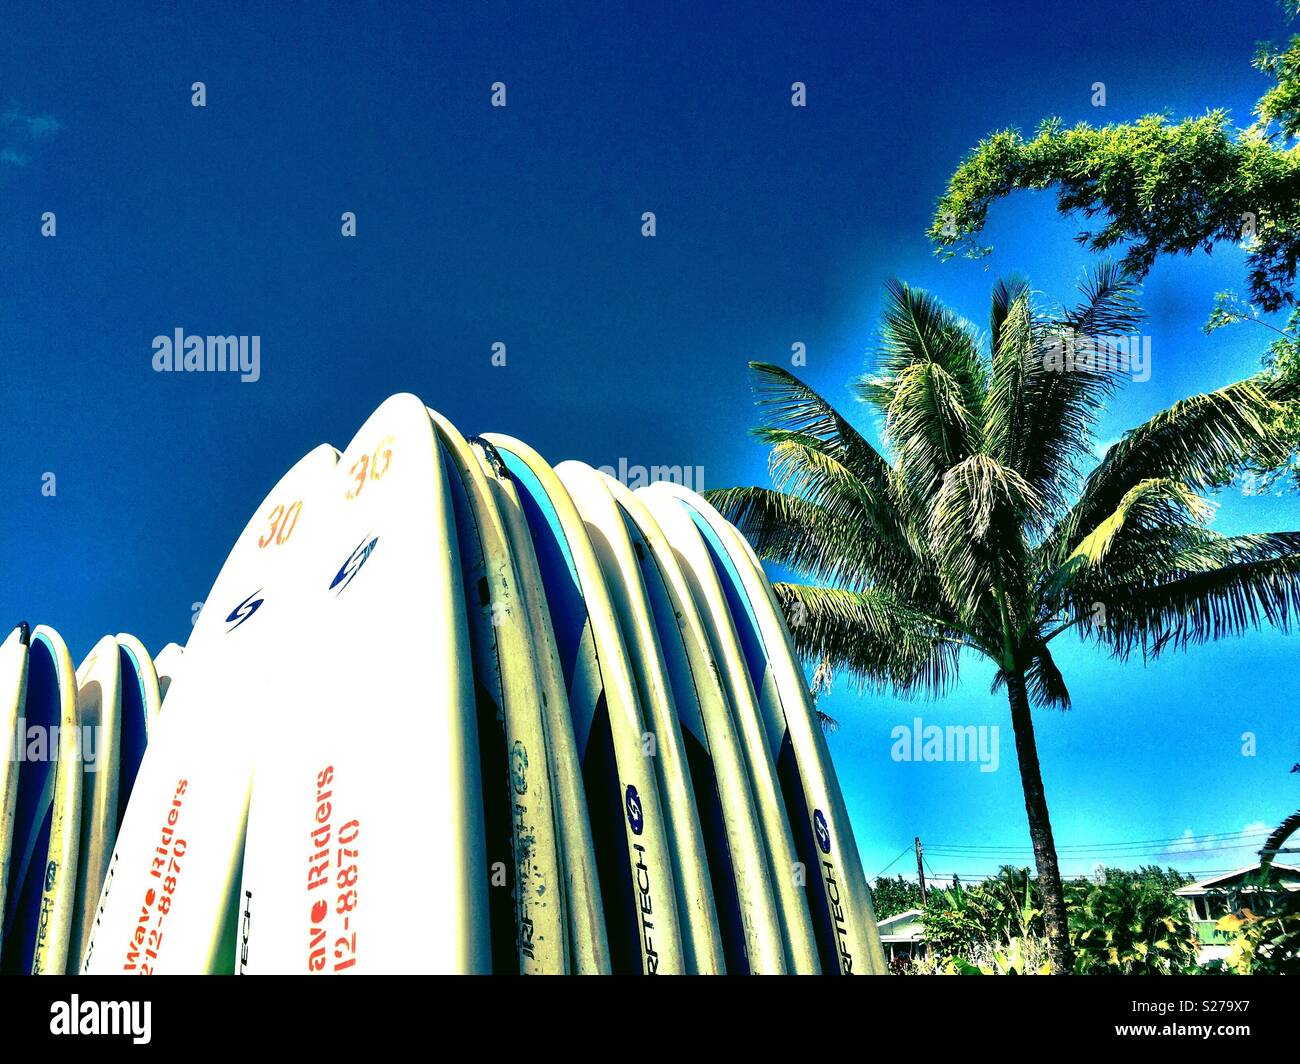 Surfboards await under tropical palms for the next eager riders in north shore Kauai, Hawaii paradise - Stock Image